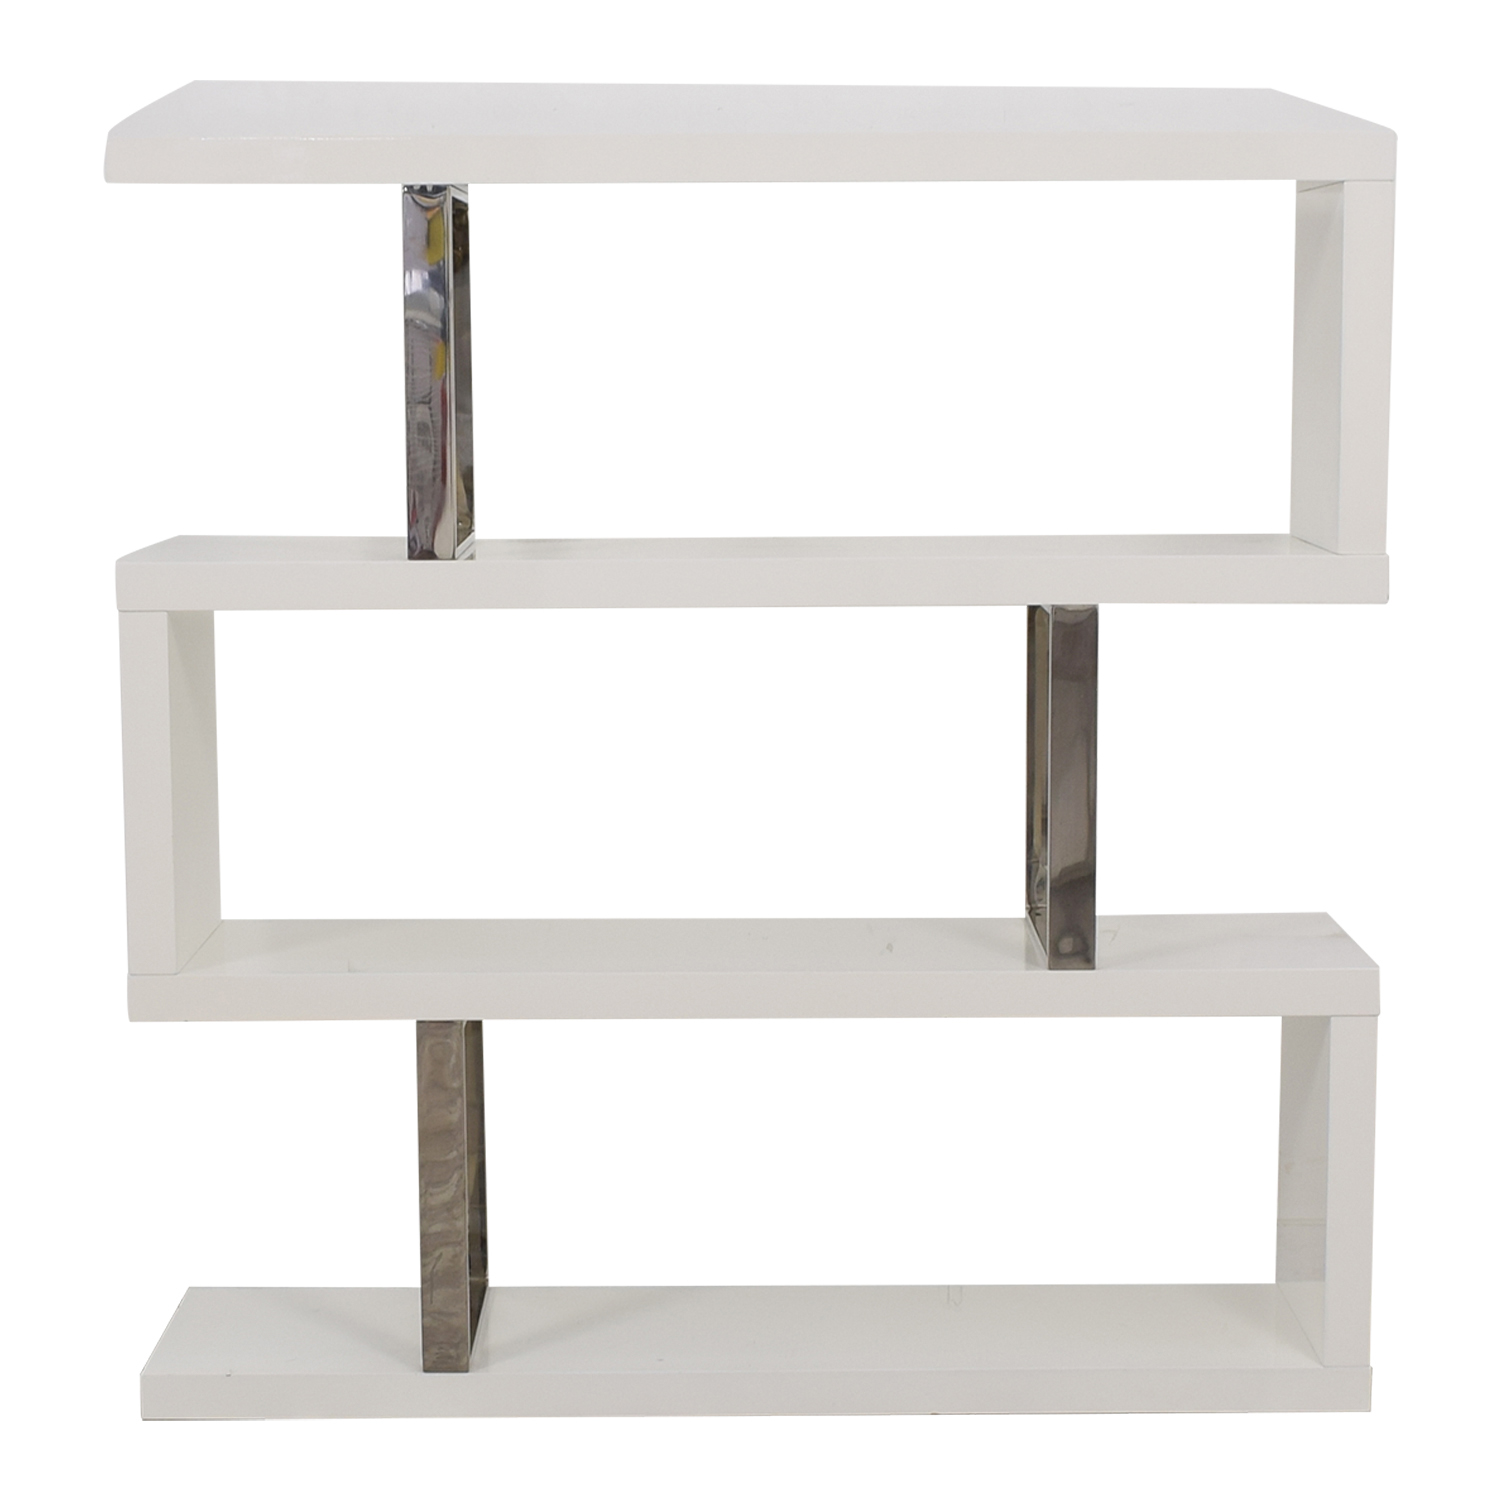 Modloft Modloft Pearl Bookcase price